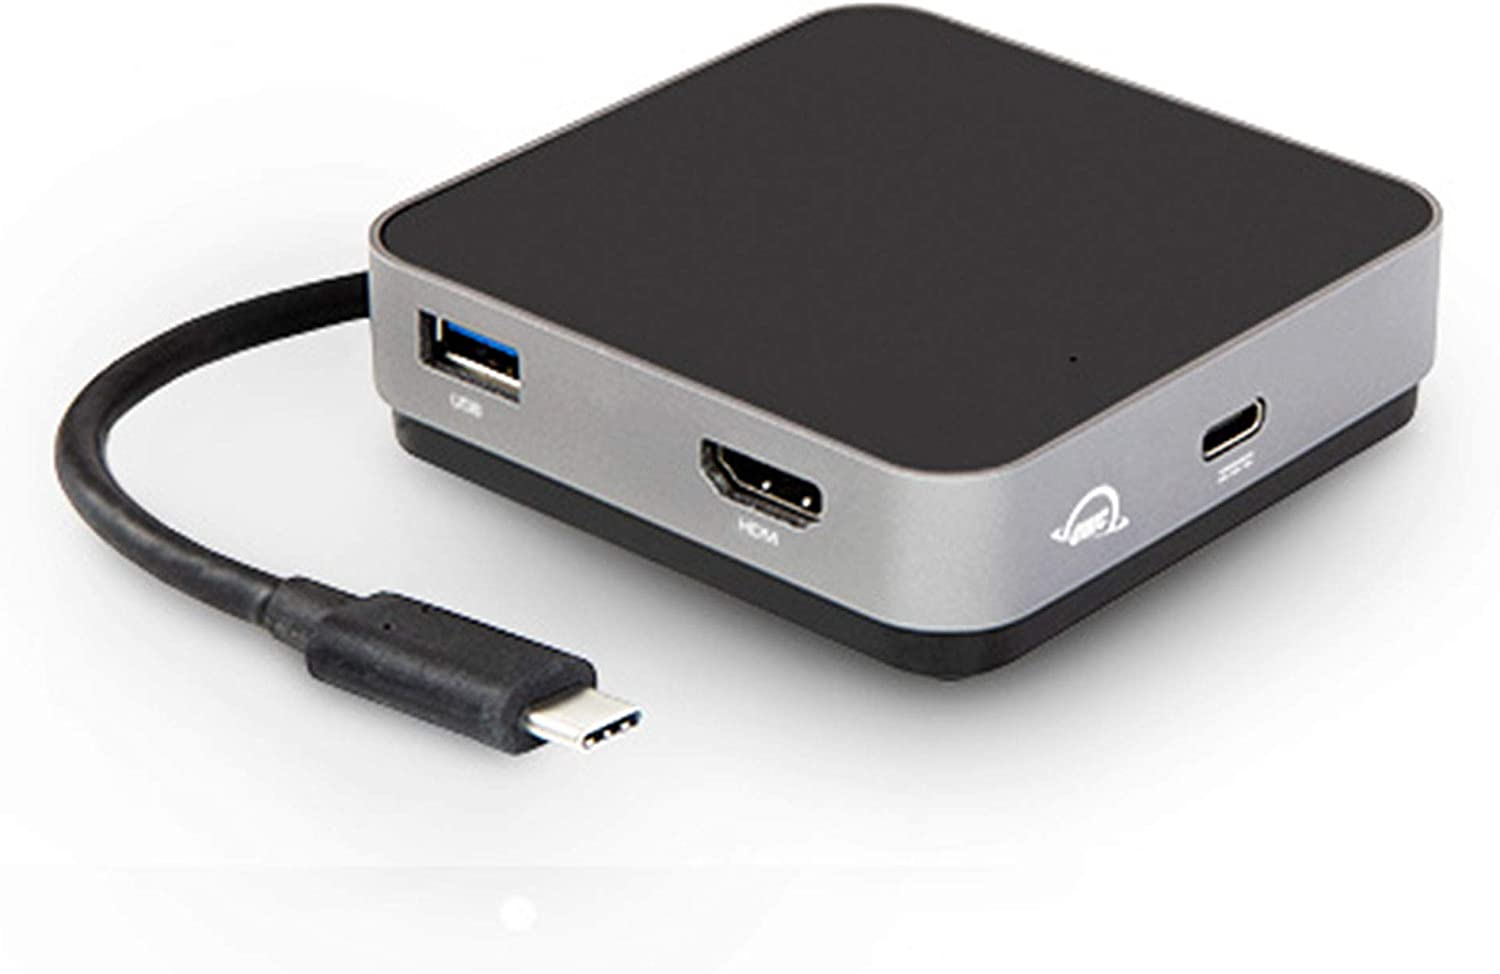 OWC USB-C Travel Dock, 5 Port with USB 3.1, HDMI, SD Card, and 100W Power Pass Through, Space Grey